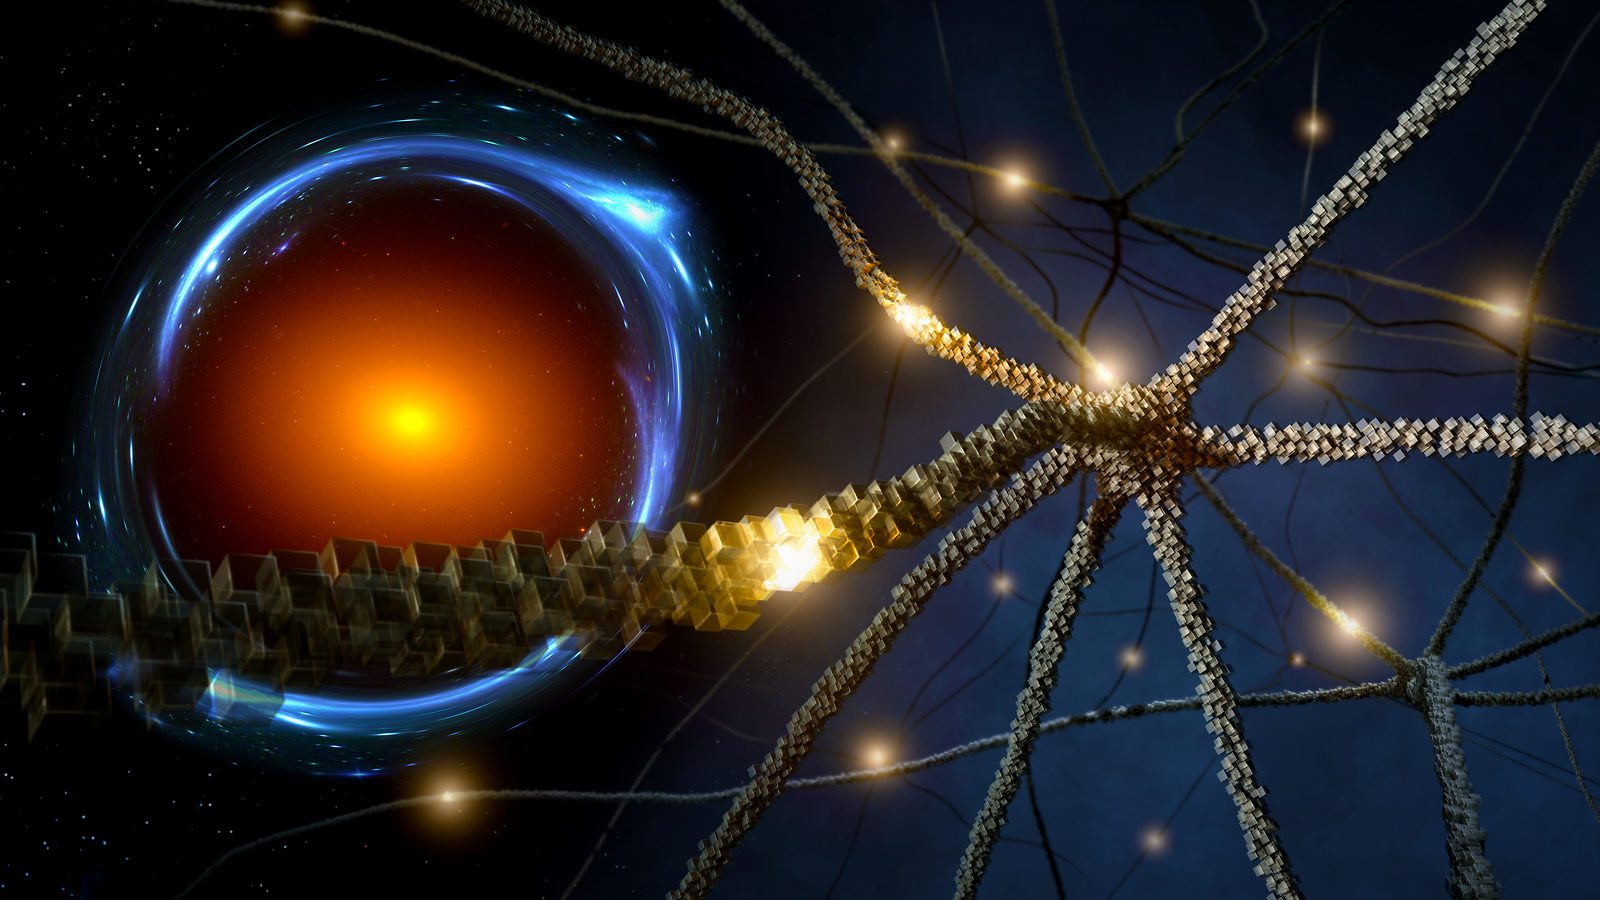 Neurons and Einstein ring